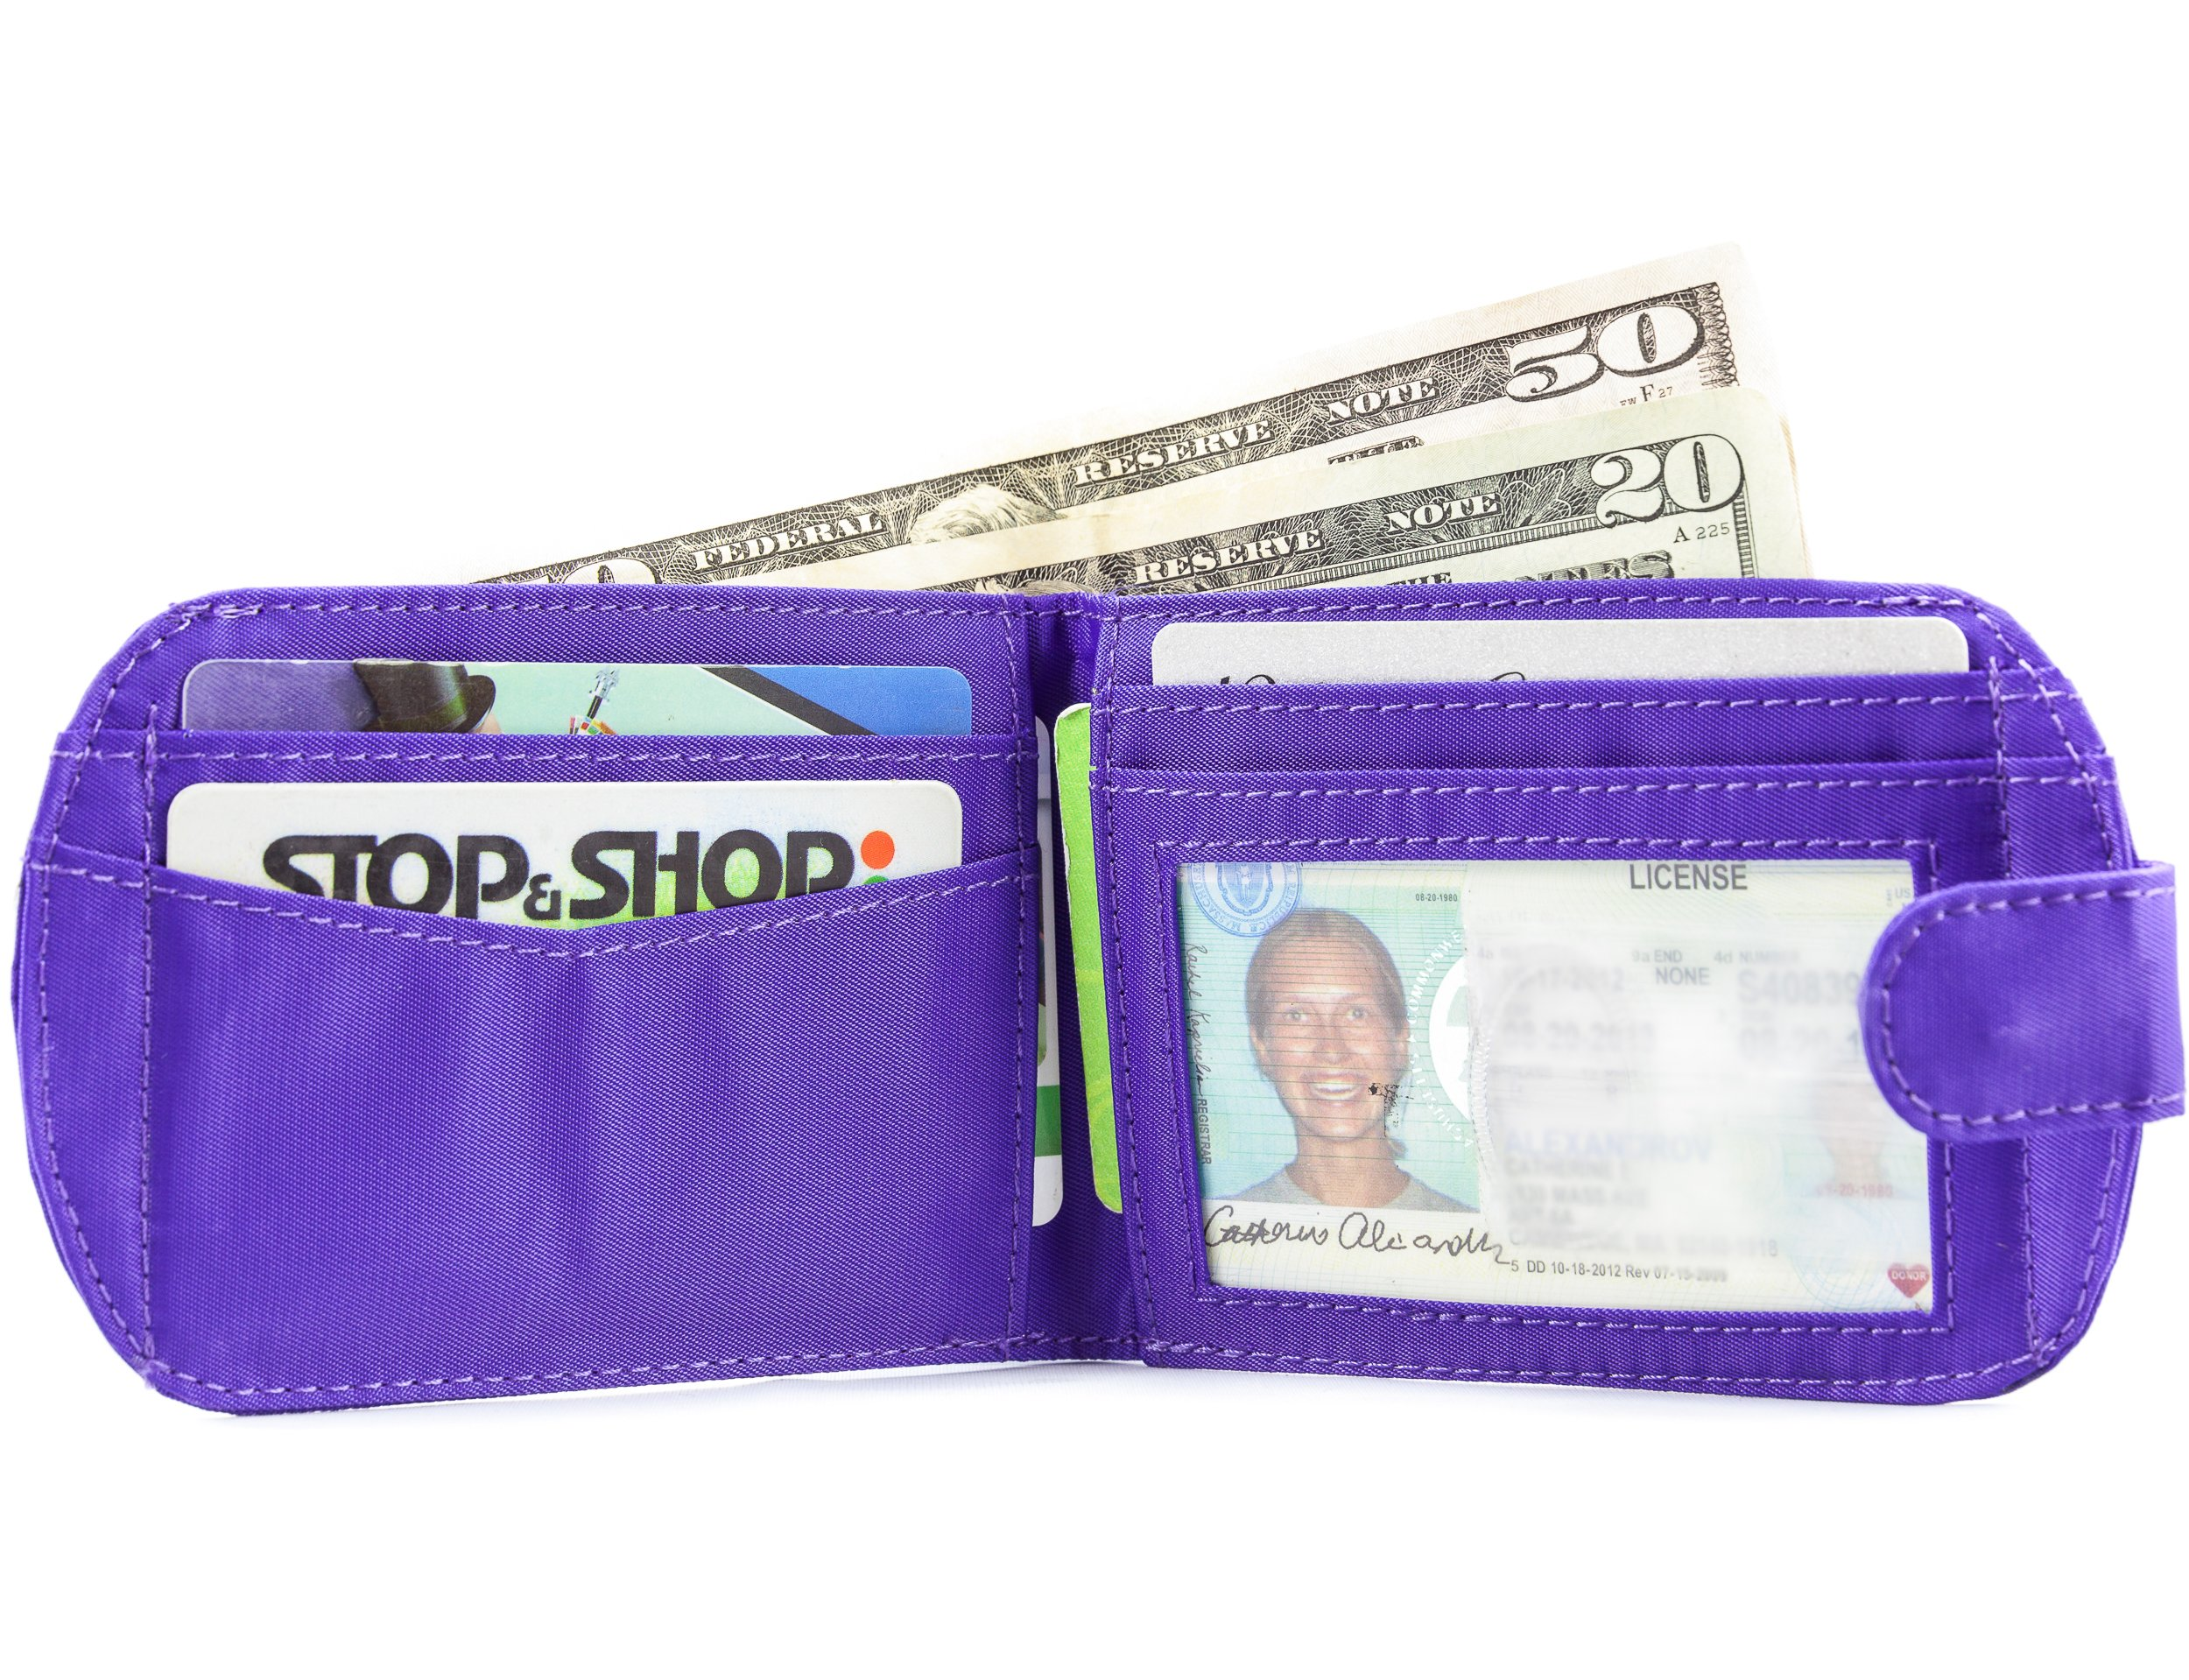 Big Skinny Women's Taxicat Bi-Fold Slim Wallet, Holds Up to 25 Cards, Purple